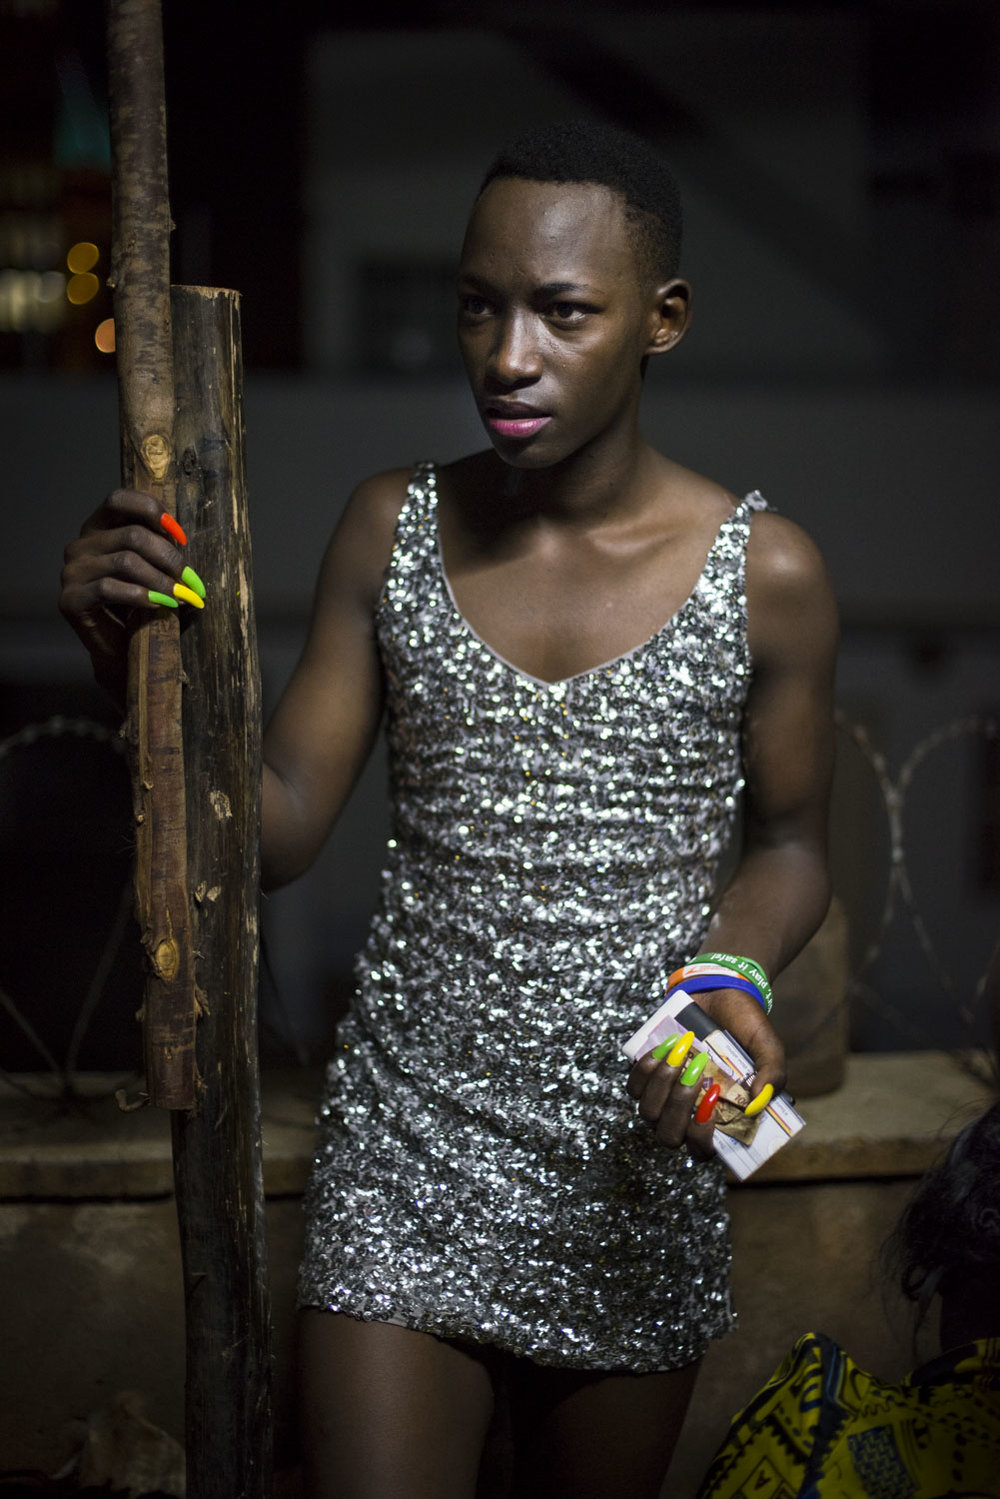 A contestant prepares backstage for the Mister and Miss Pride competition. Kampala, Uganda. August 7, 2015.